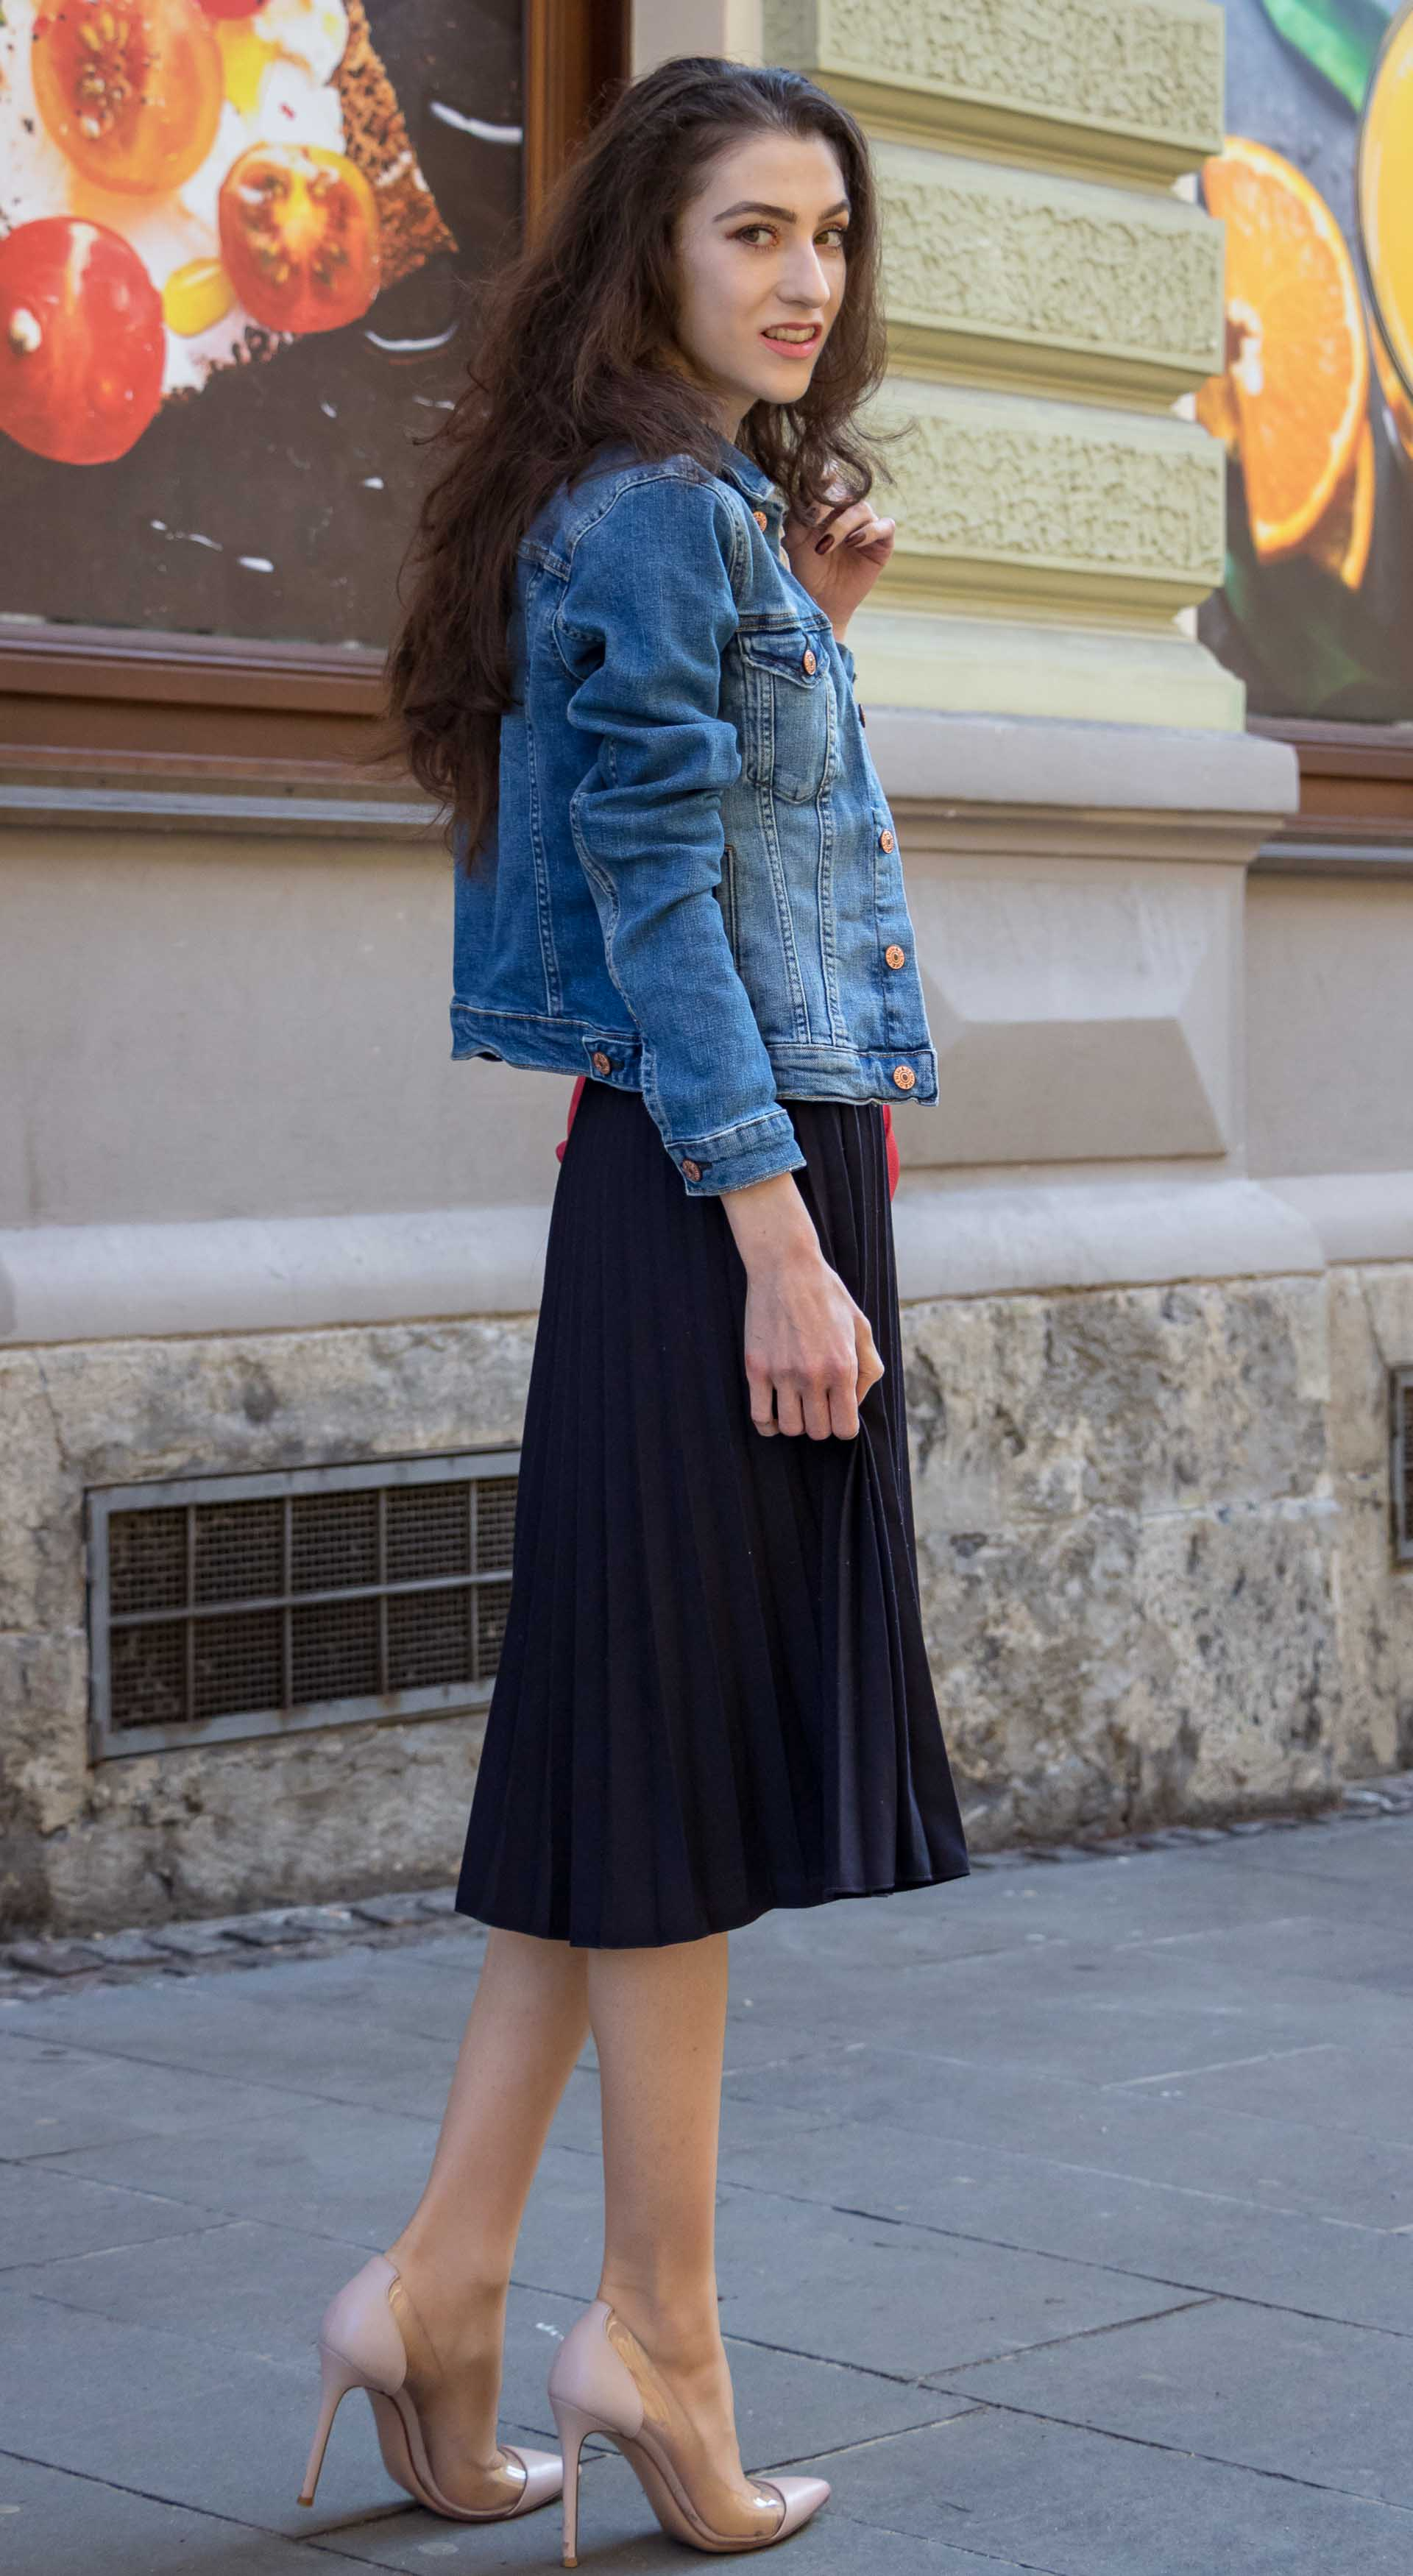 Veronika Lipar Fashion Blogger of Brunette from Wall Street dressed in H&M denim jacket, floral blouse, midi pleated skirt, Gianvito Rossi plexi pumps, pink top handle bag on cold summer morning before going to brunch with friends